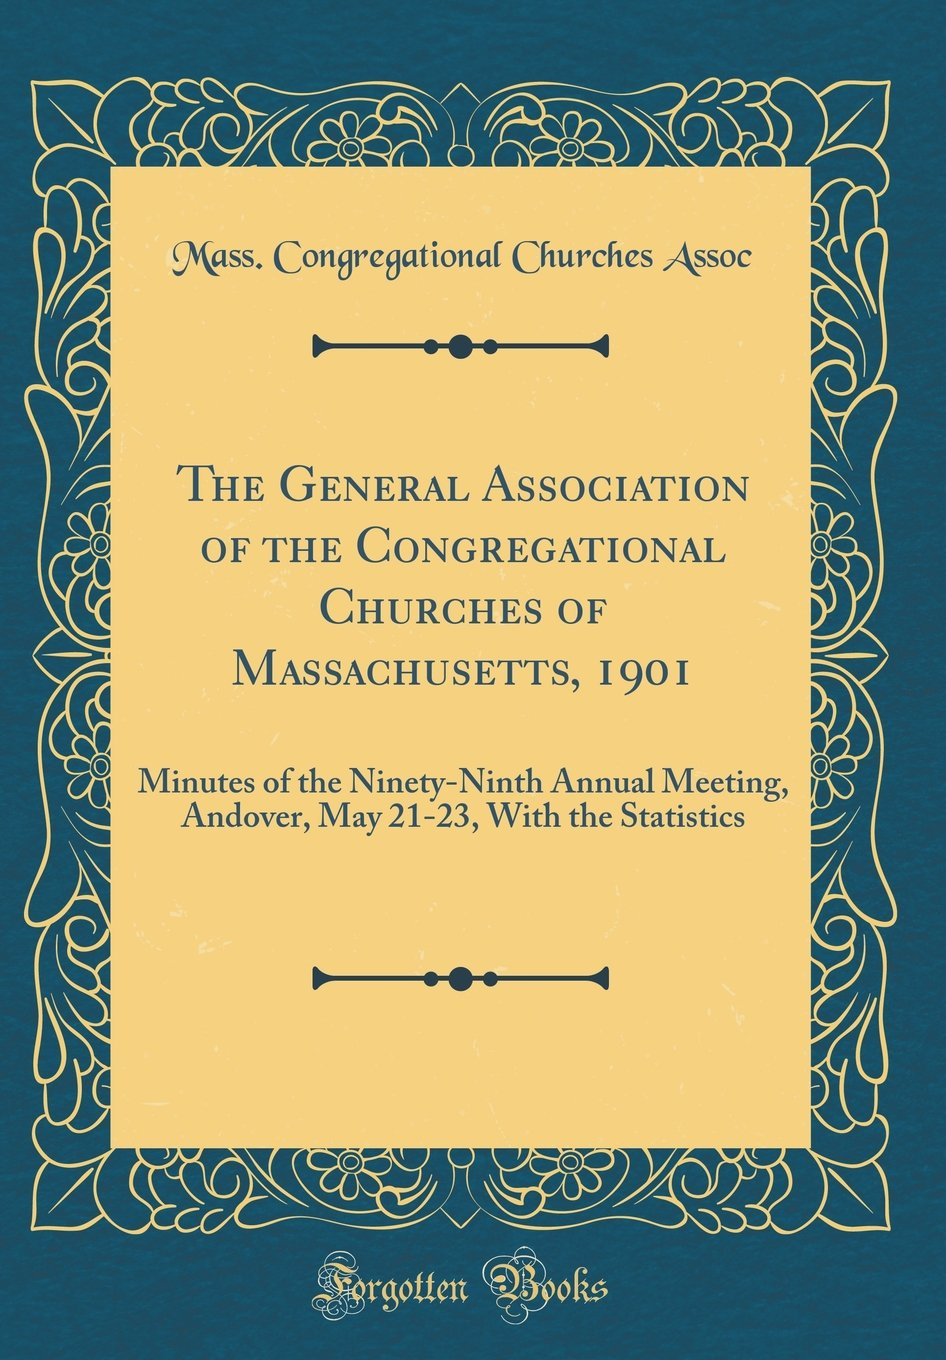 The General Association of the Congregational Churches of Massachusetts, 1901: Minutes of the Ninety-Ninth Annual Meeting, Andover, May 21-23, with the Statistics (Classic Reprint) pdf epub